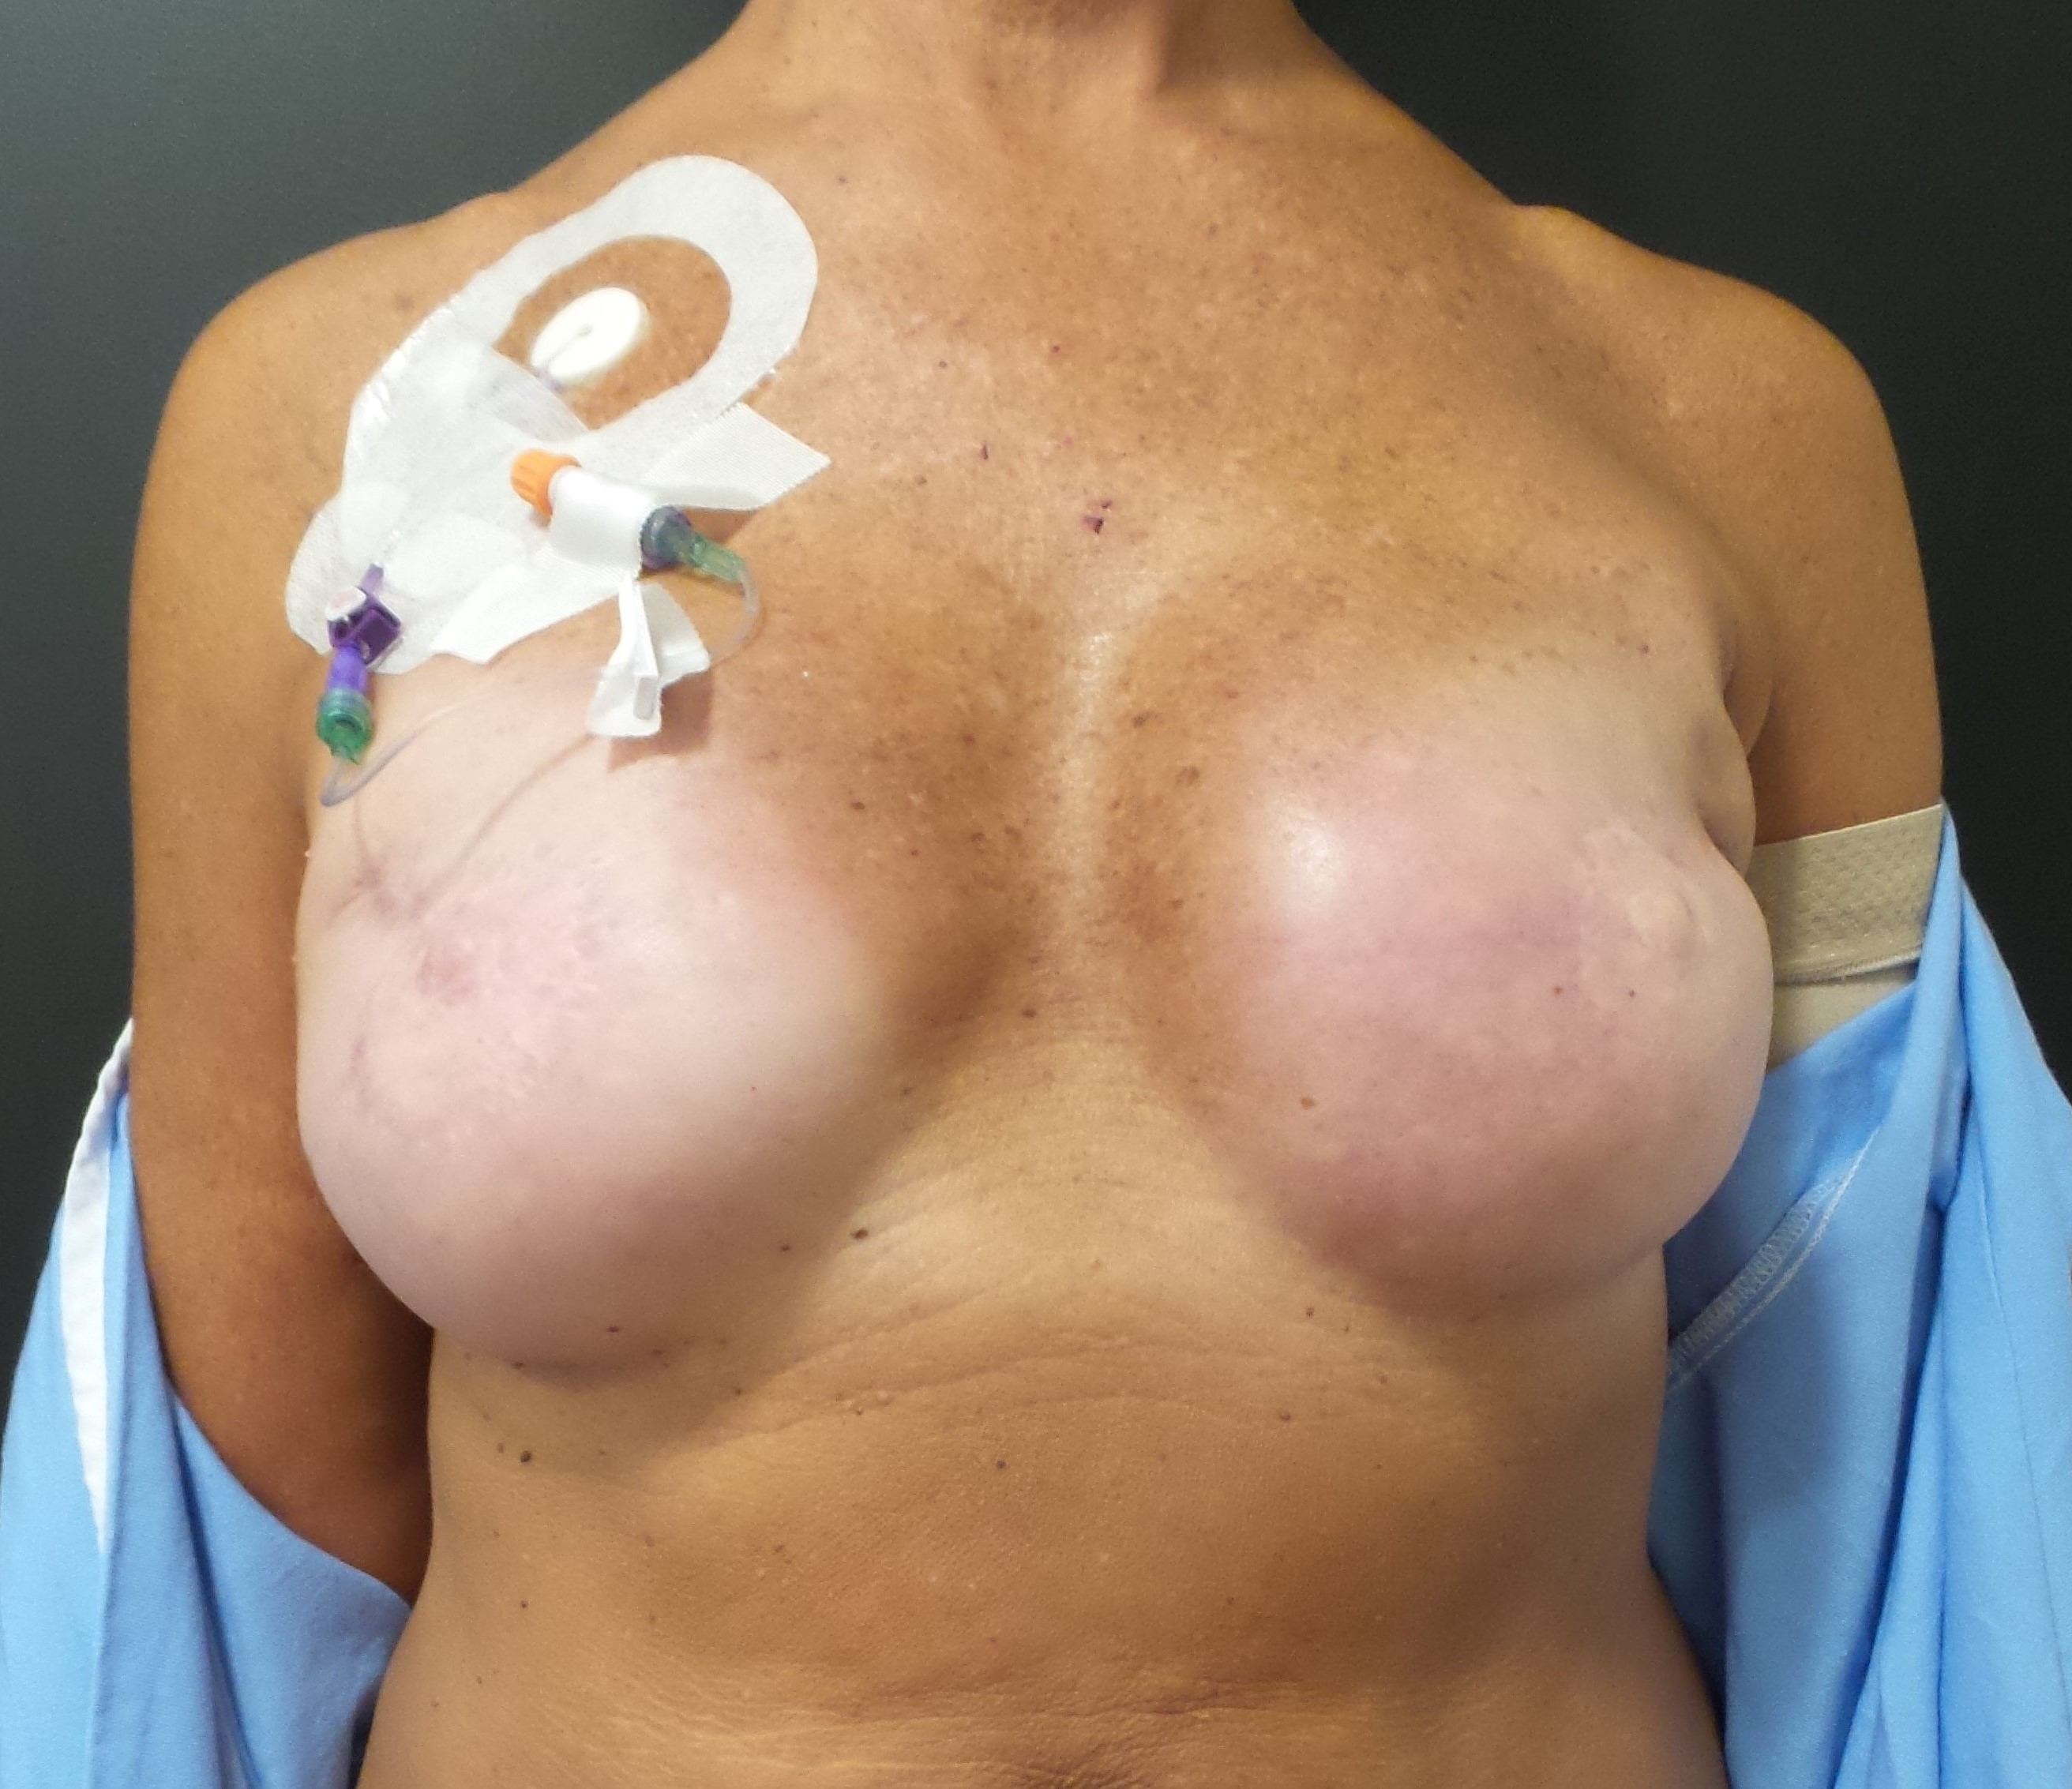 Hard Left Breast Implant after Radiation with Infection